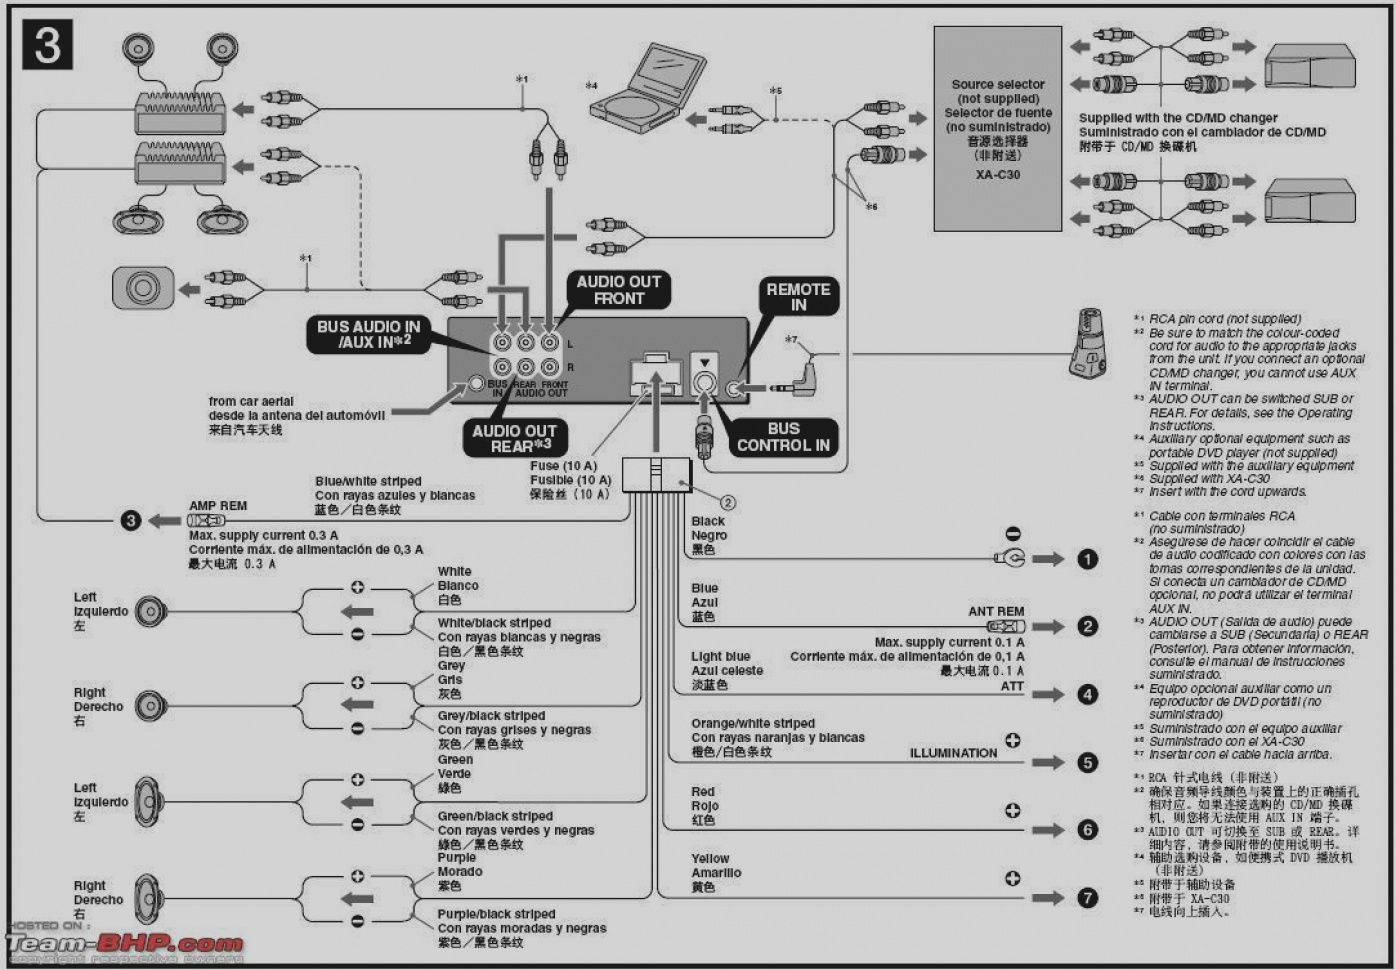 sony xplod cdx gt300 wiring diagram color wiring diagram sony cdx gt300 wiring harness [ 1396 x 970 Pixel ]